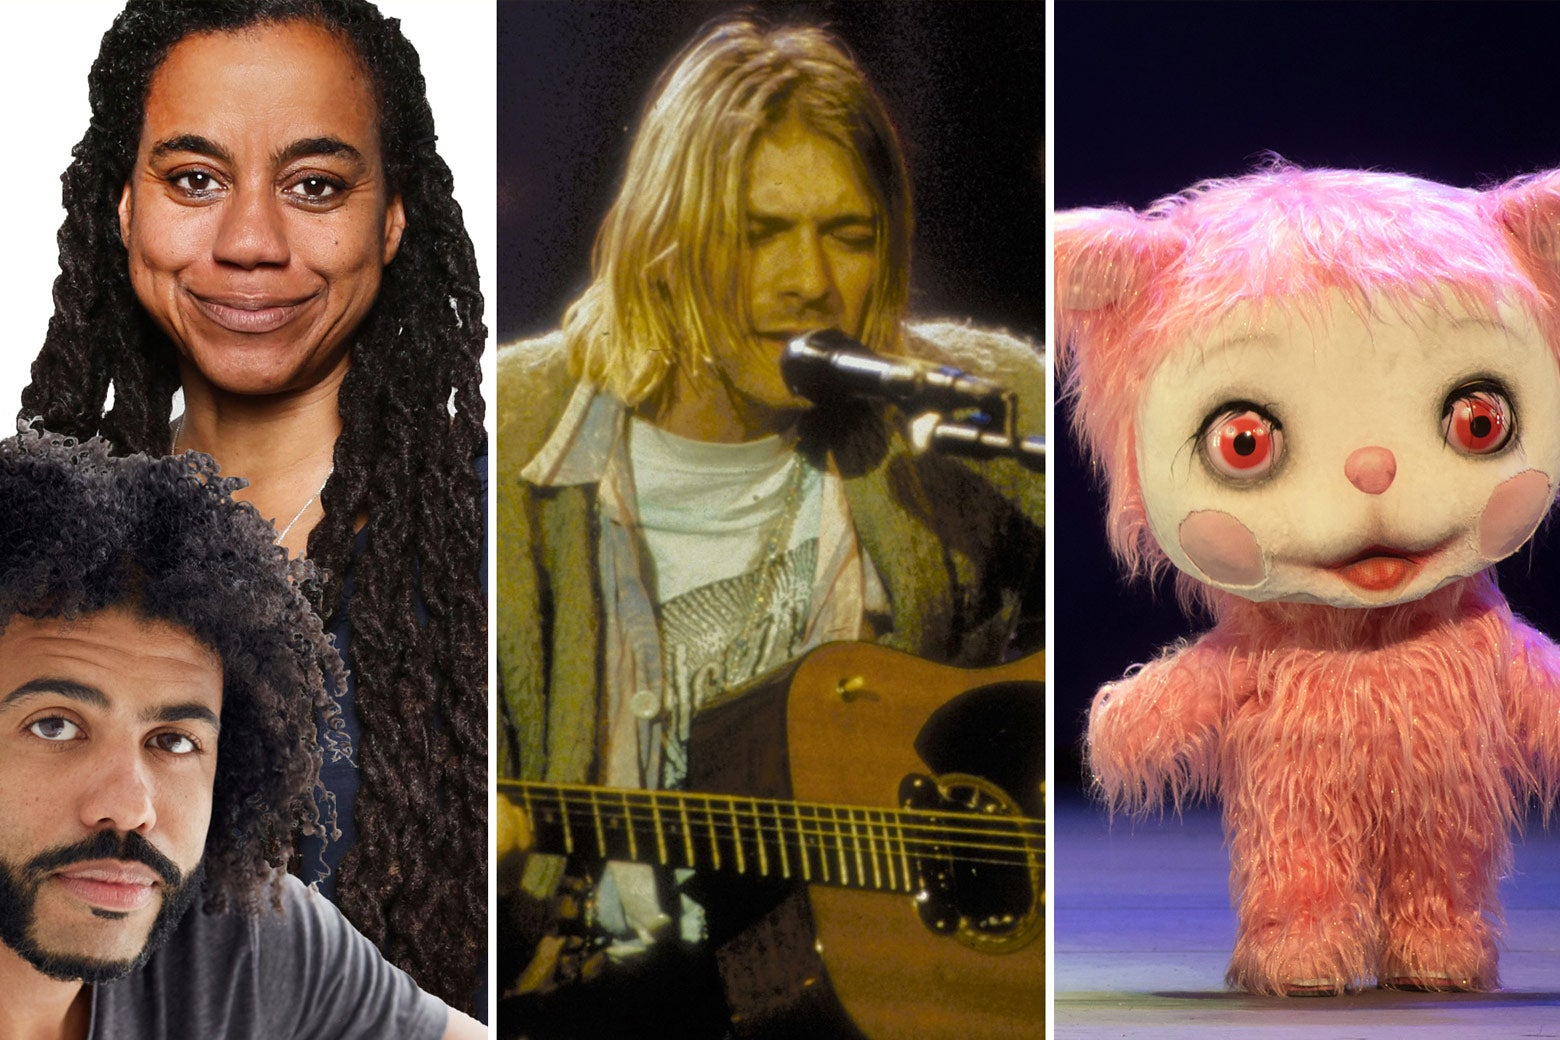 Daveed Diggs with Suzan-Lori Parks; Kurt Cobain performing on MTV Unplugged; and the supernumerary Iggy Berlin in a giant pink Yak costume.